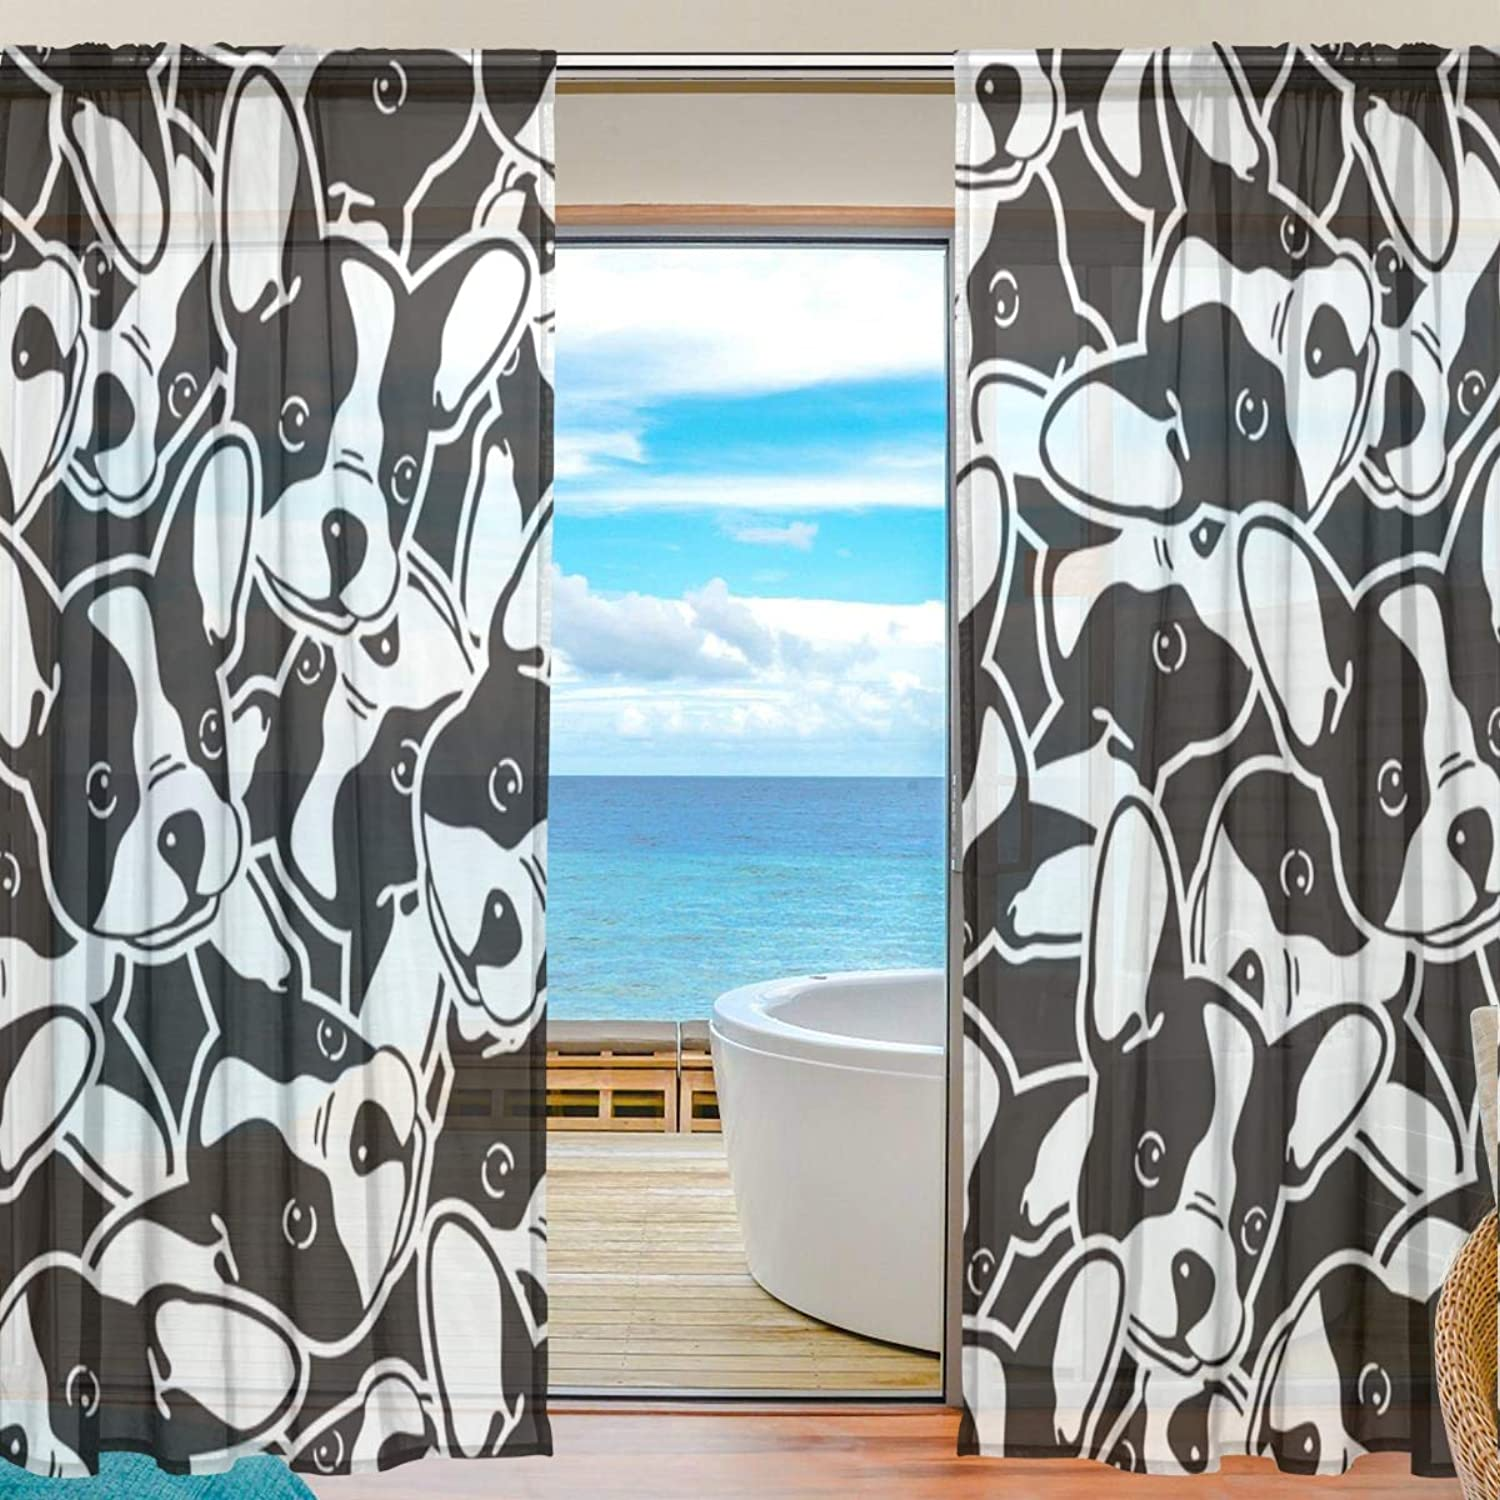 Pugs Pattern 2 Pieces Curtain Panel 55 x 78 inches for Bedroom Living Room